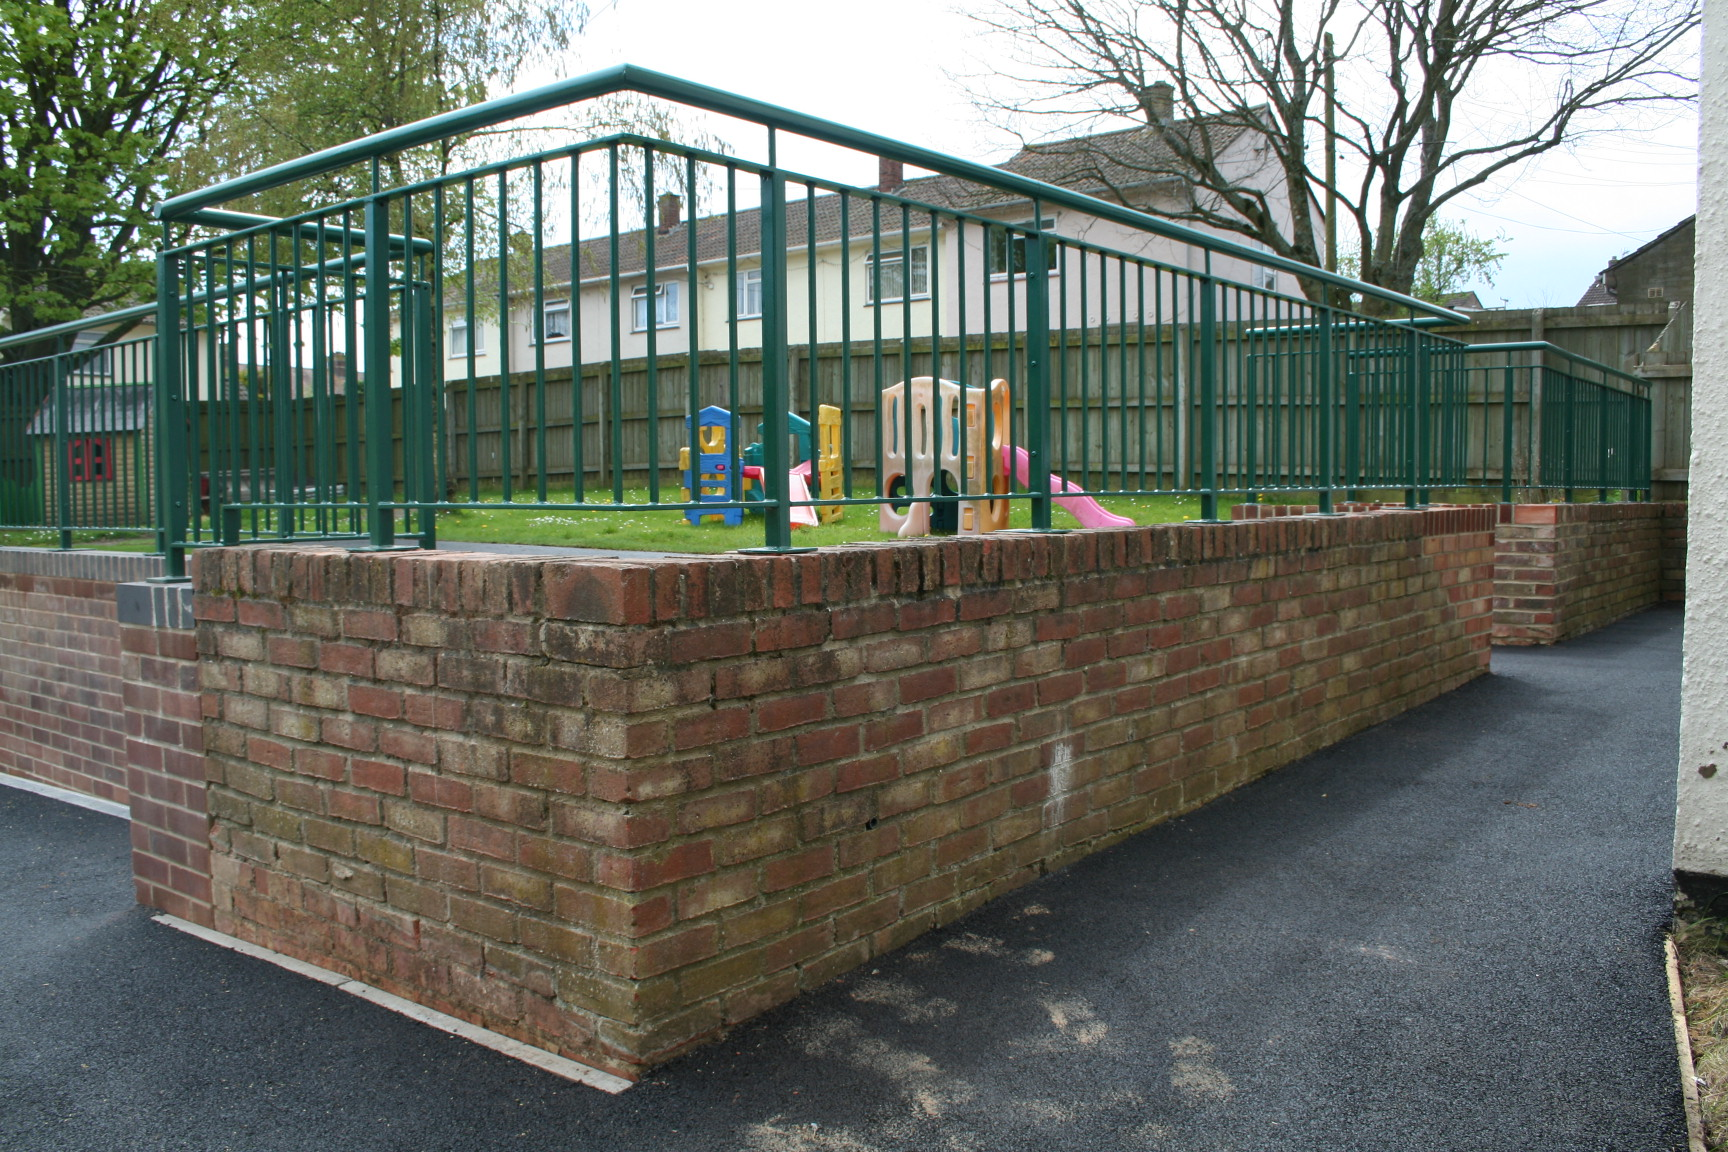 BALTONSBOROUGH BOWTOP RAILINGS